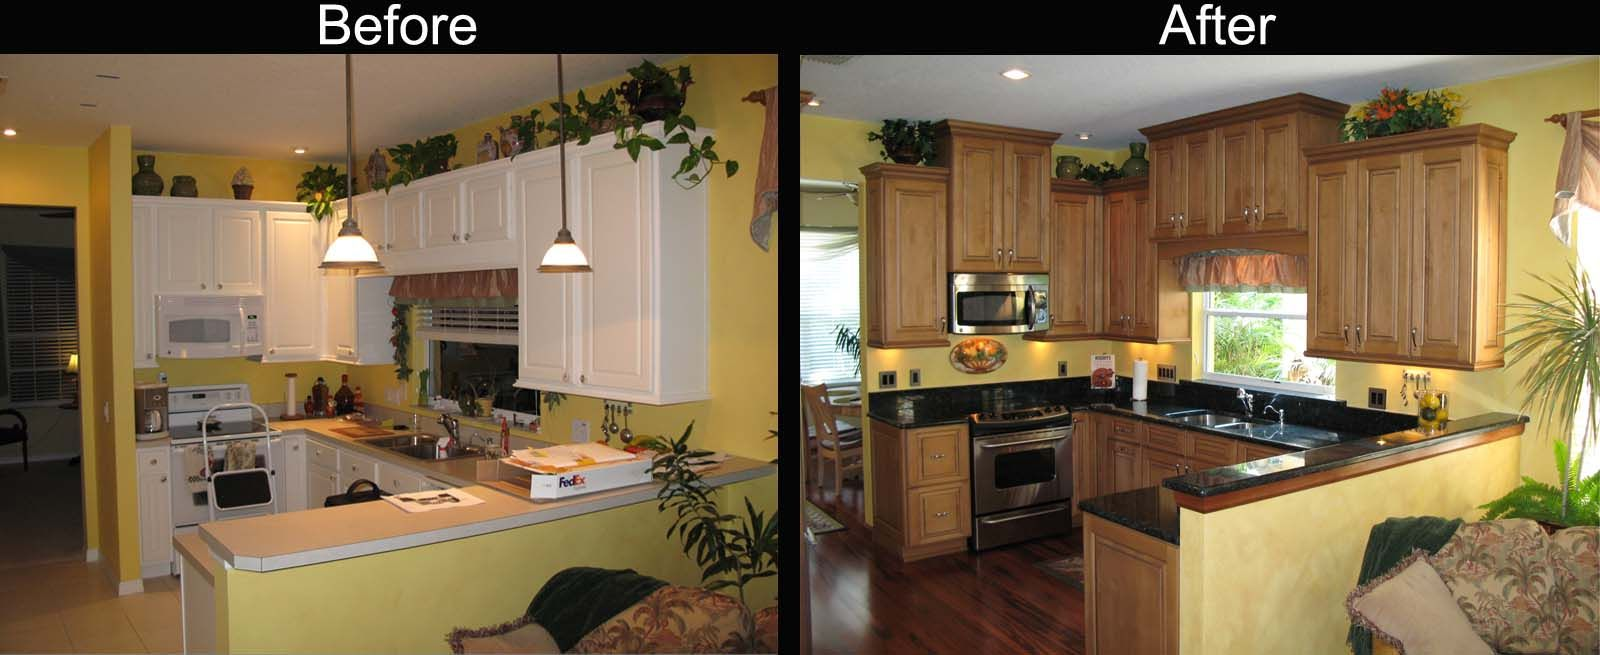 Remodel Kitchen Before And After painted cabinets before and after: ideas for your kitchen